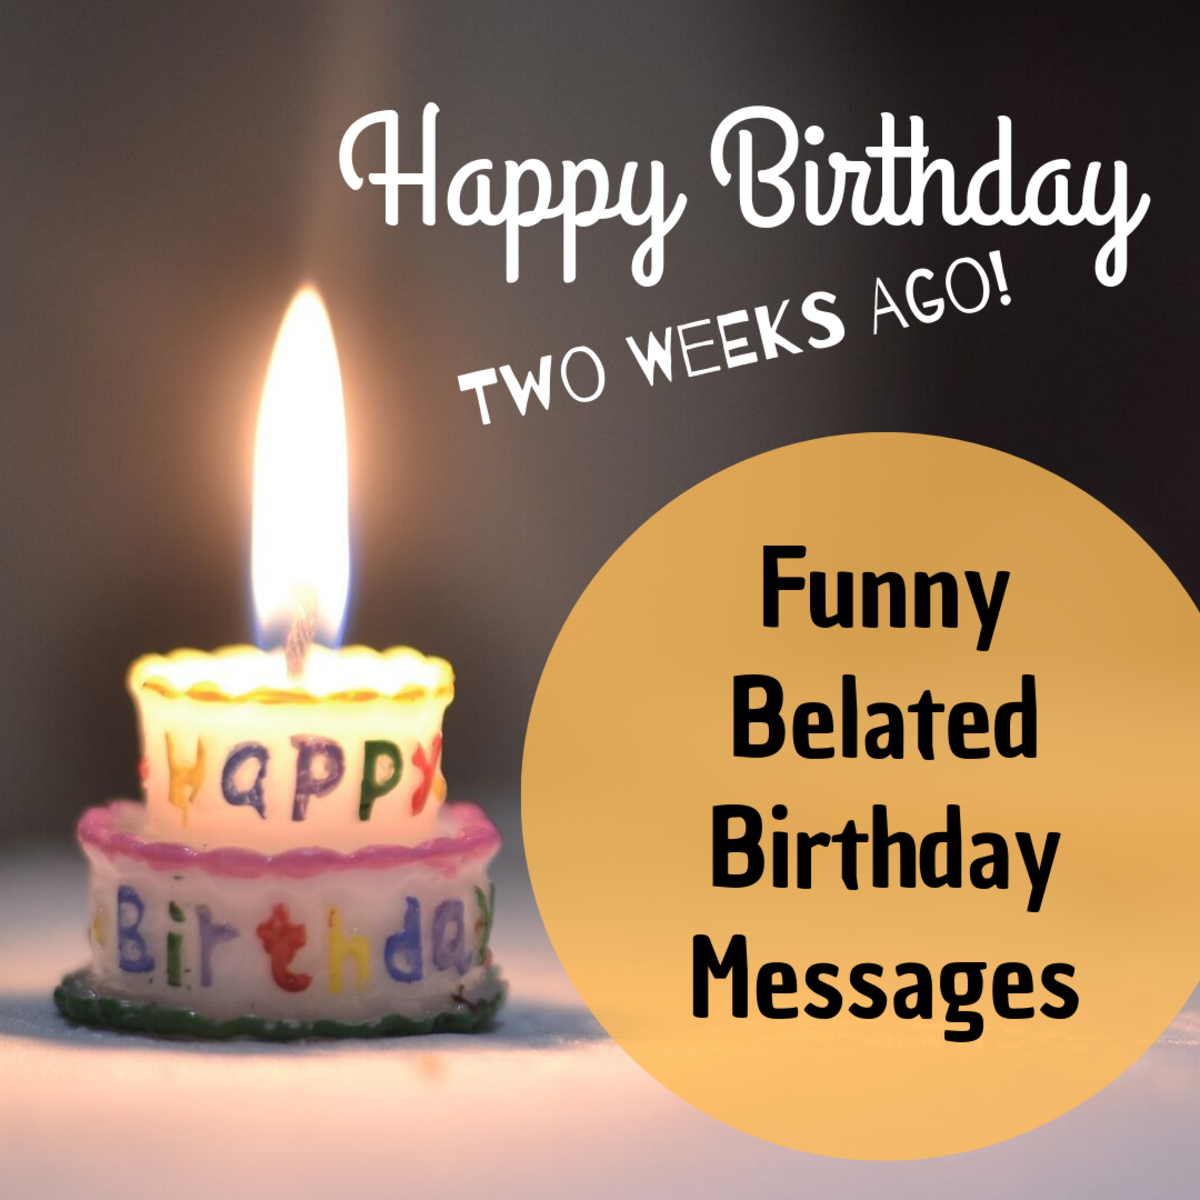 Funny Belated Happy Birthday Wishes Late Messages And